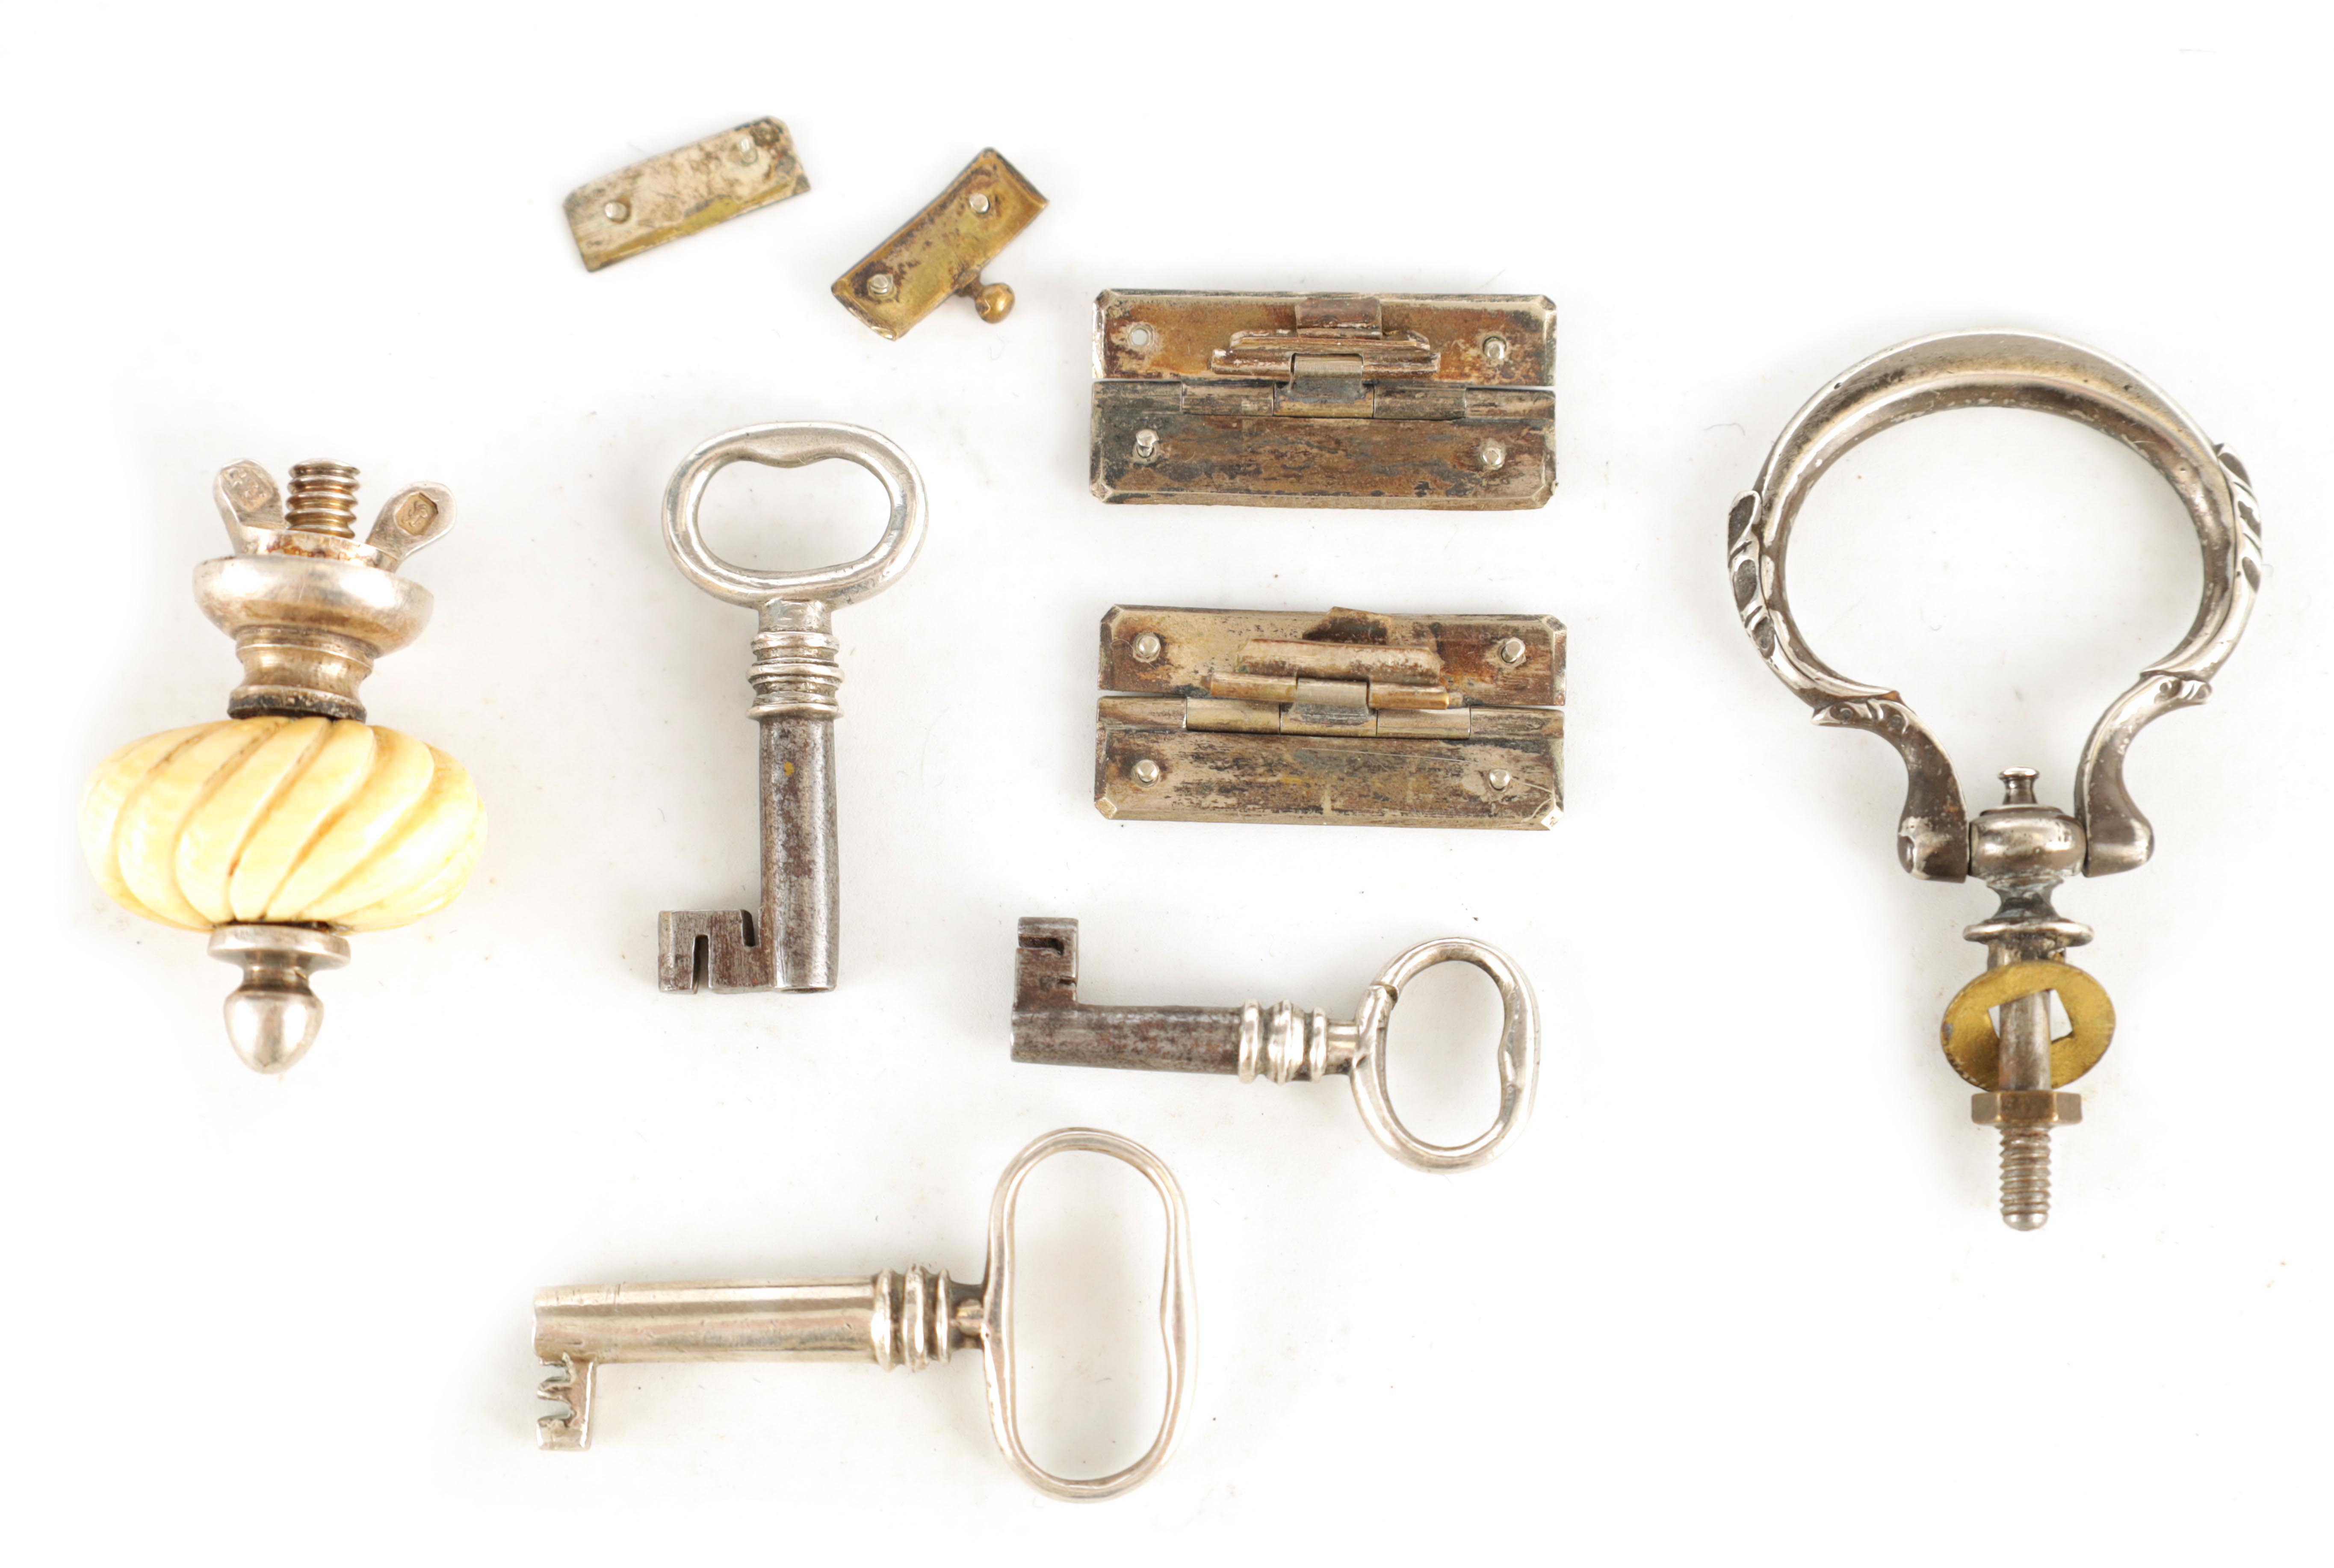 A SELECTION OF SILVER KEYS, FINIALS AND HINGES 7 items in total